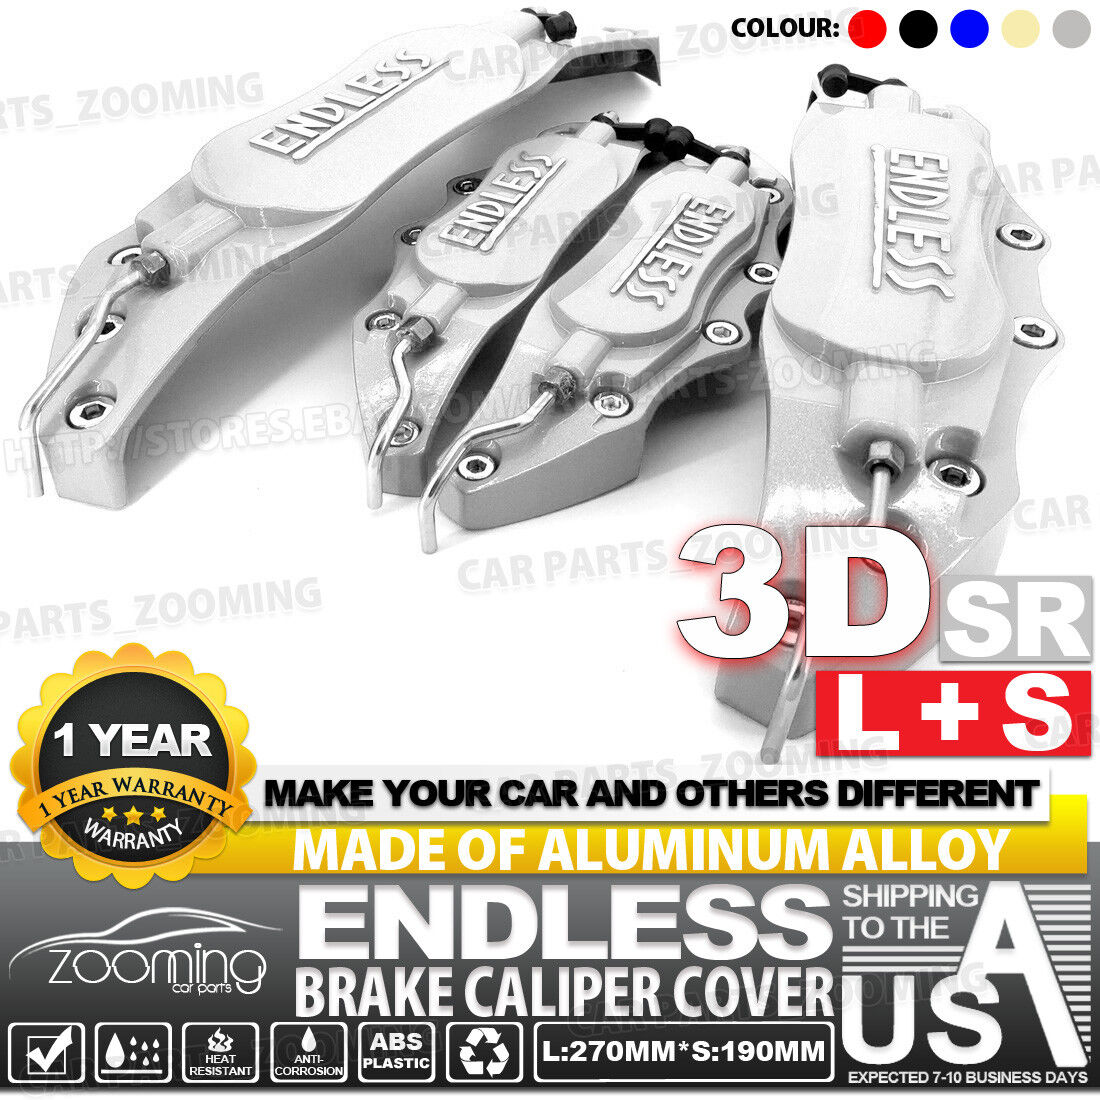 Red Aluminum alloy 3D ENDLESS Style Universal Brake Caliper Cover 4 pcs L+S LW03